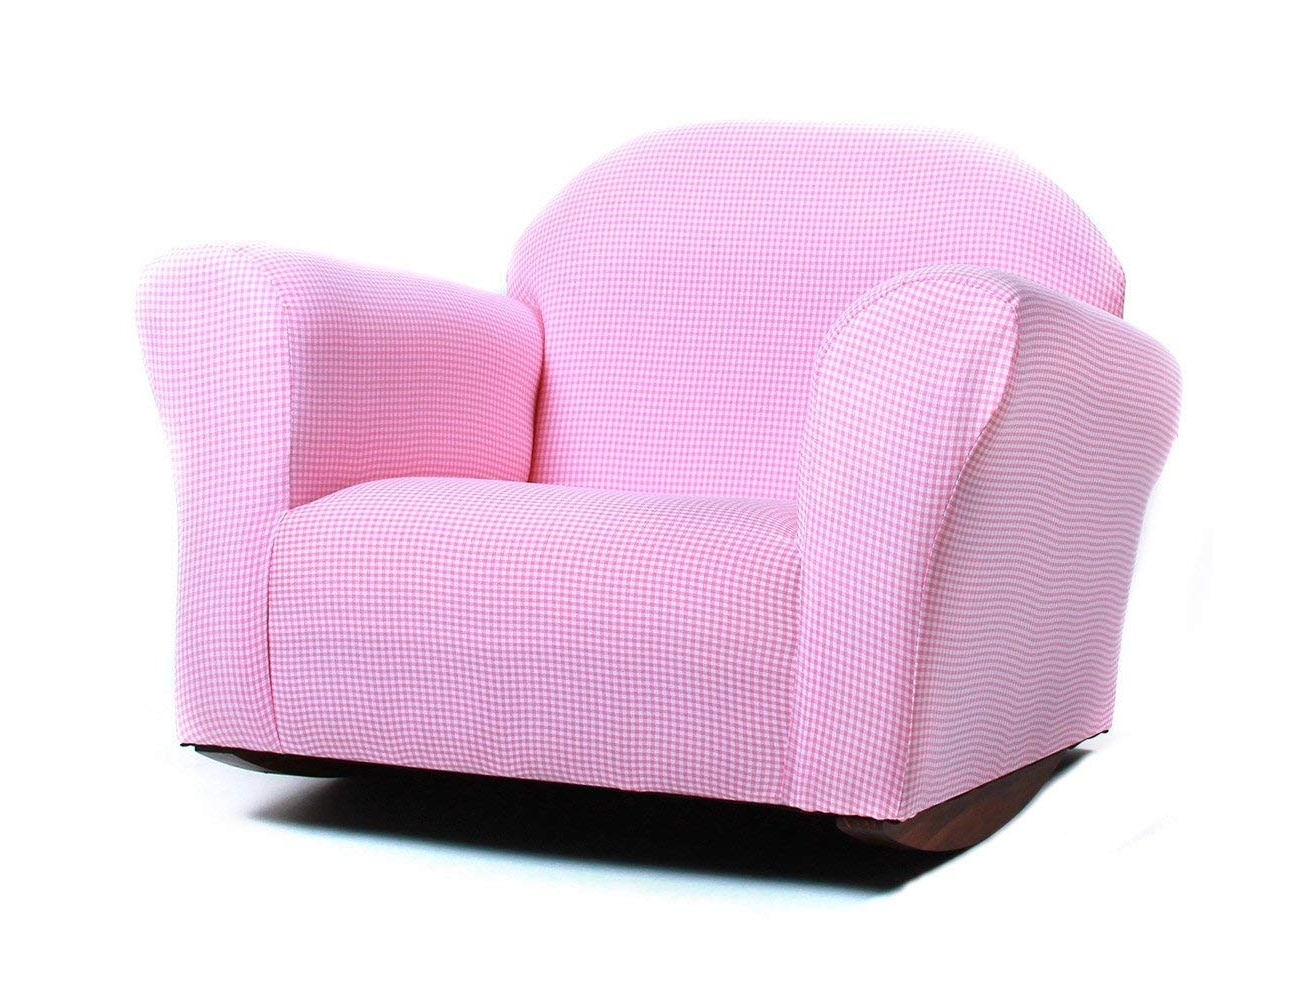 Amazon: Keet Roundy Rocking Kid's Chair Gingham, Pink: Baby Throughout Most Current Rocking Chairs For Toddlers (View 15 of 15)